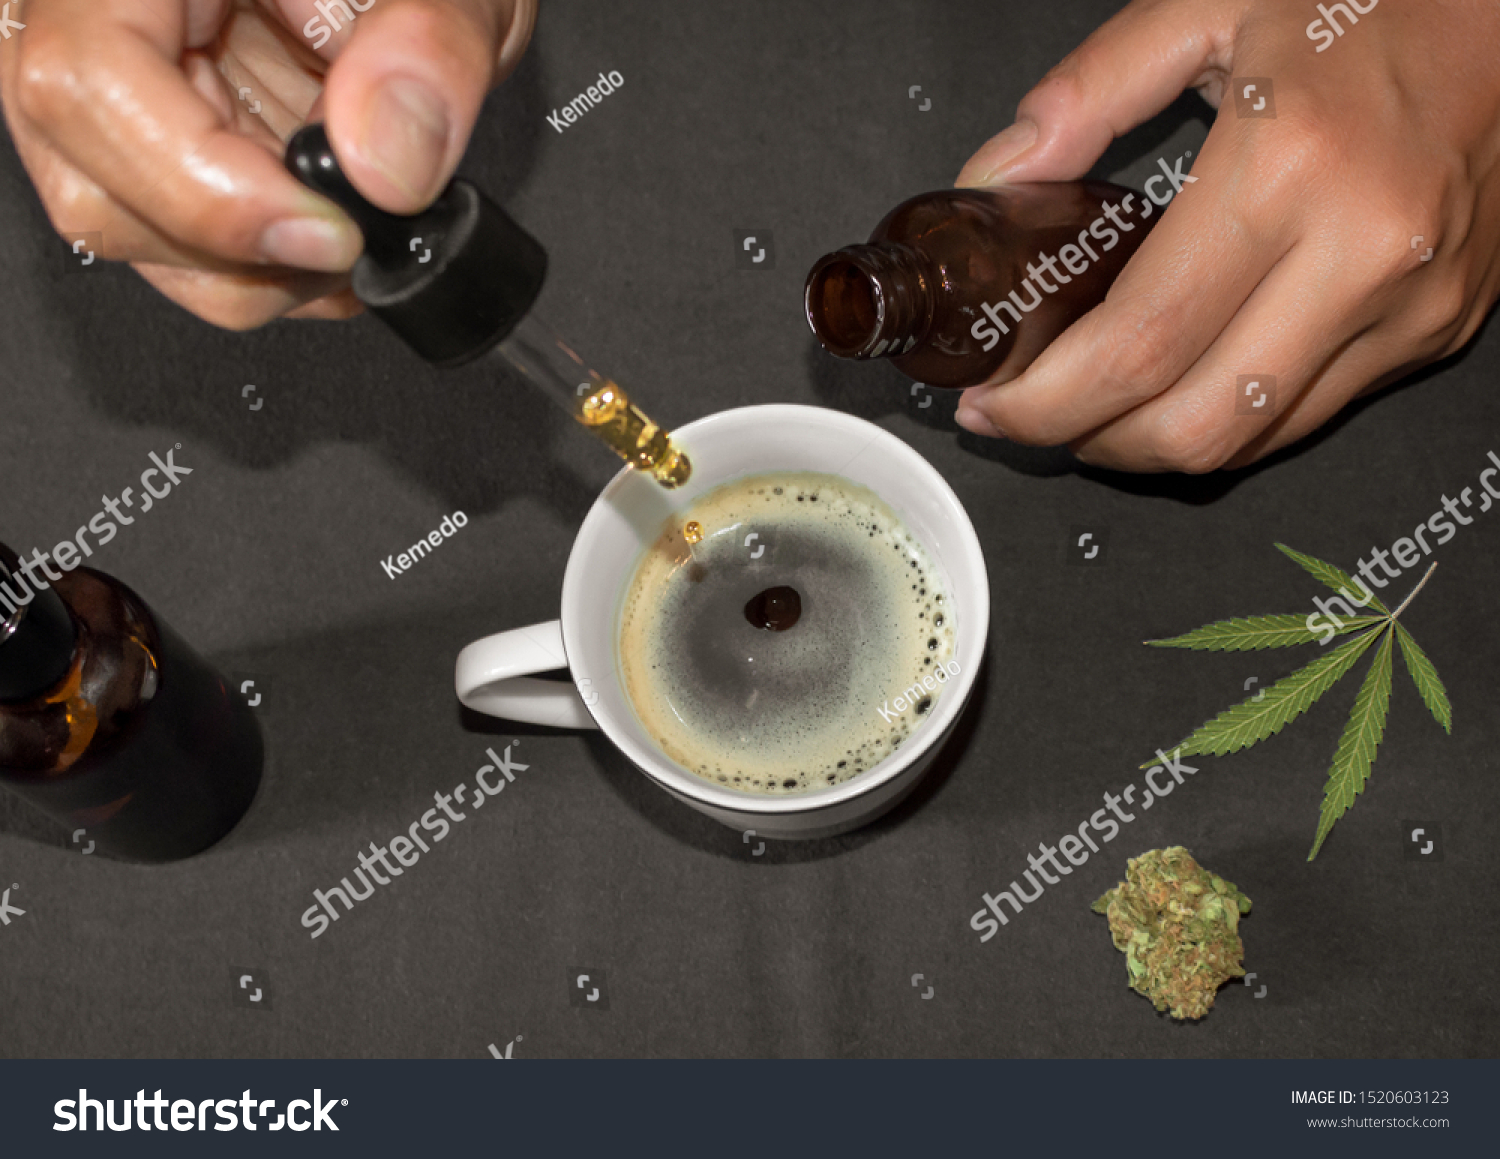 Pouring CBD tincture in a coffee cup, natural remedy of marihuana. Person using cannabis oil with a dropper in a table with marihuana leaf. #1520603123